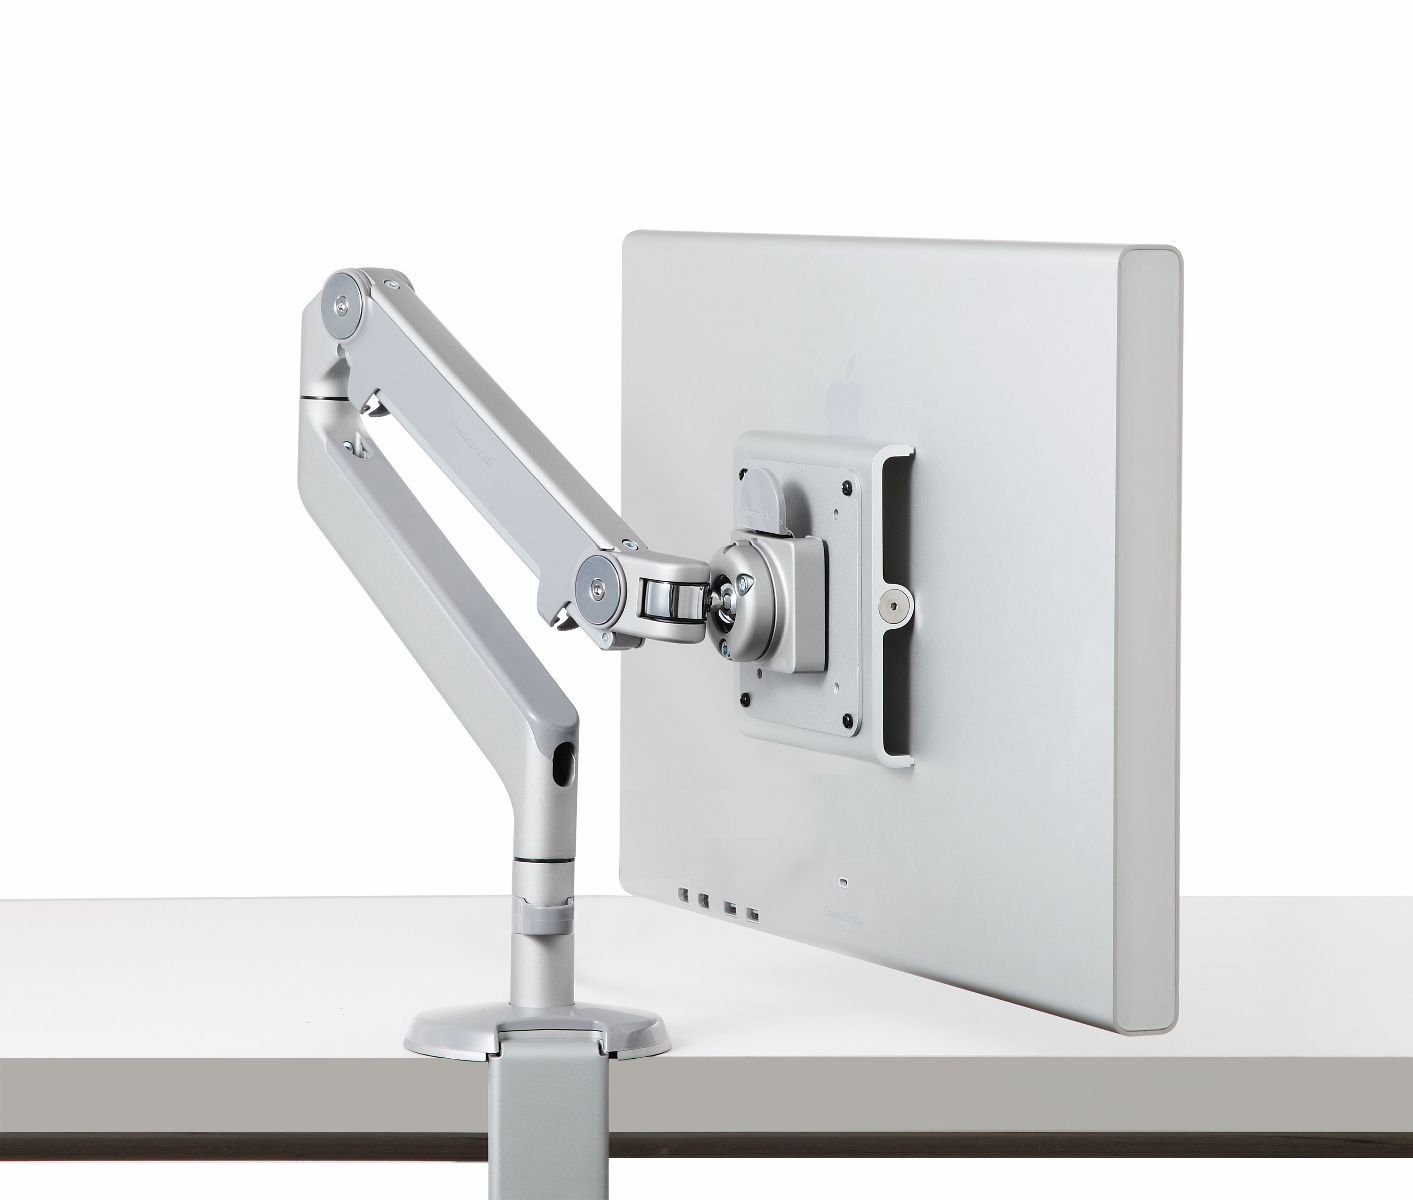 Humanscale Monitor Arm: M2 - Fixed Angled/Dynamic Arm - Standard Ball Joint